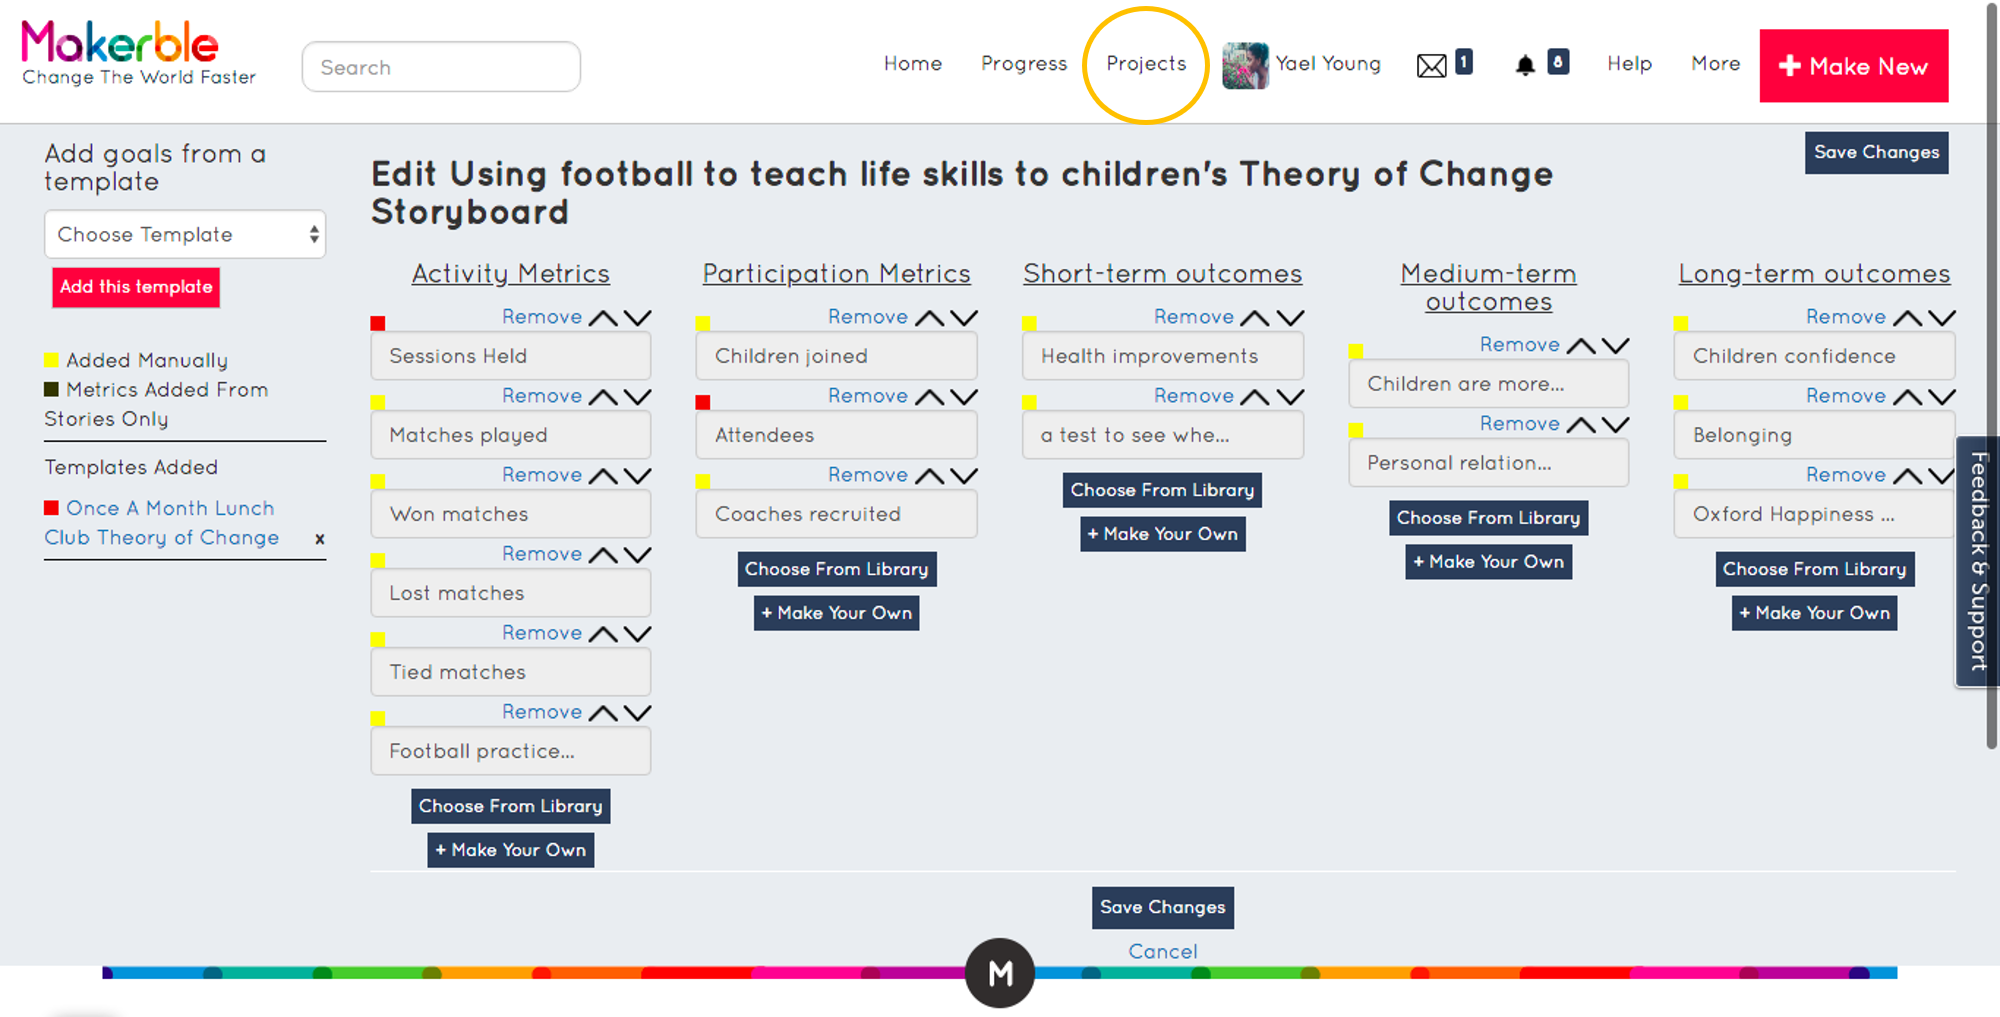 - 3.Another way to add a template to a project is from the Project's Edit Theory of Change page.You can get there by selecting My Projectsas circled on the top menu; pressing More Options button on the project in question; selecting Manage Theory of Change; and selecting Edit Theory of Change